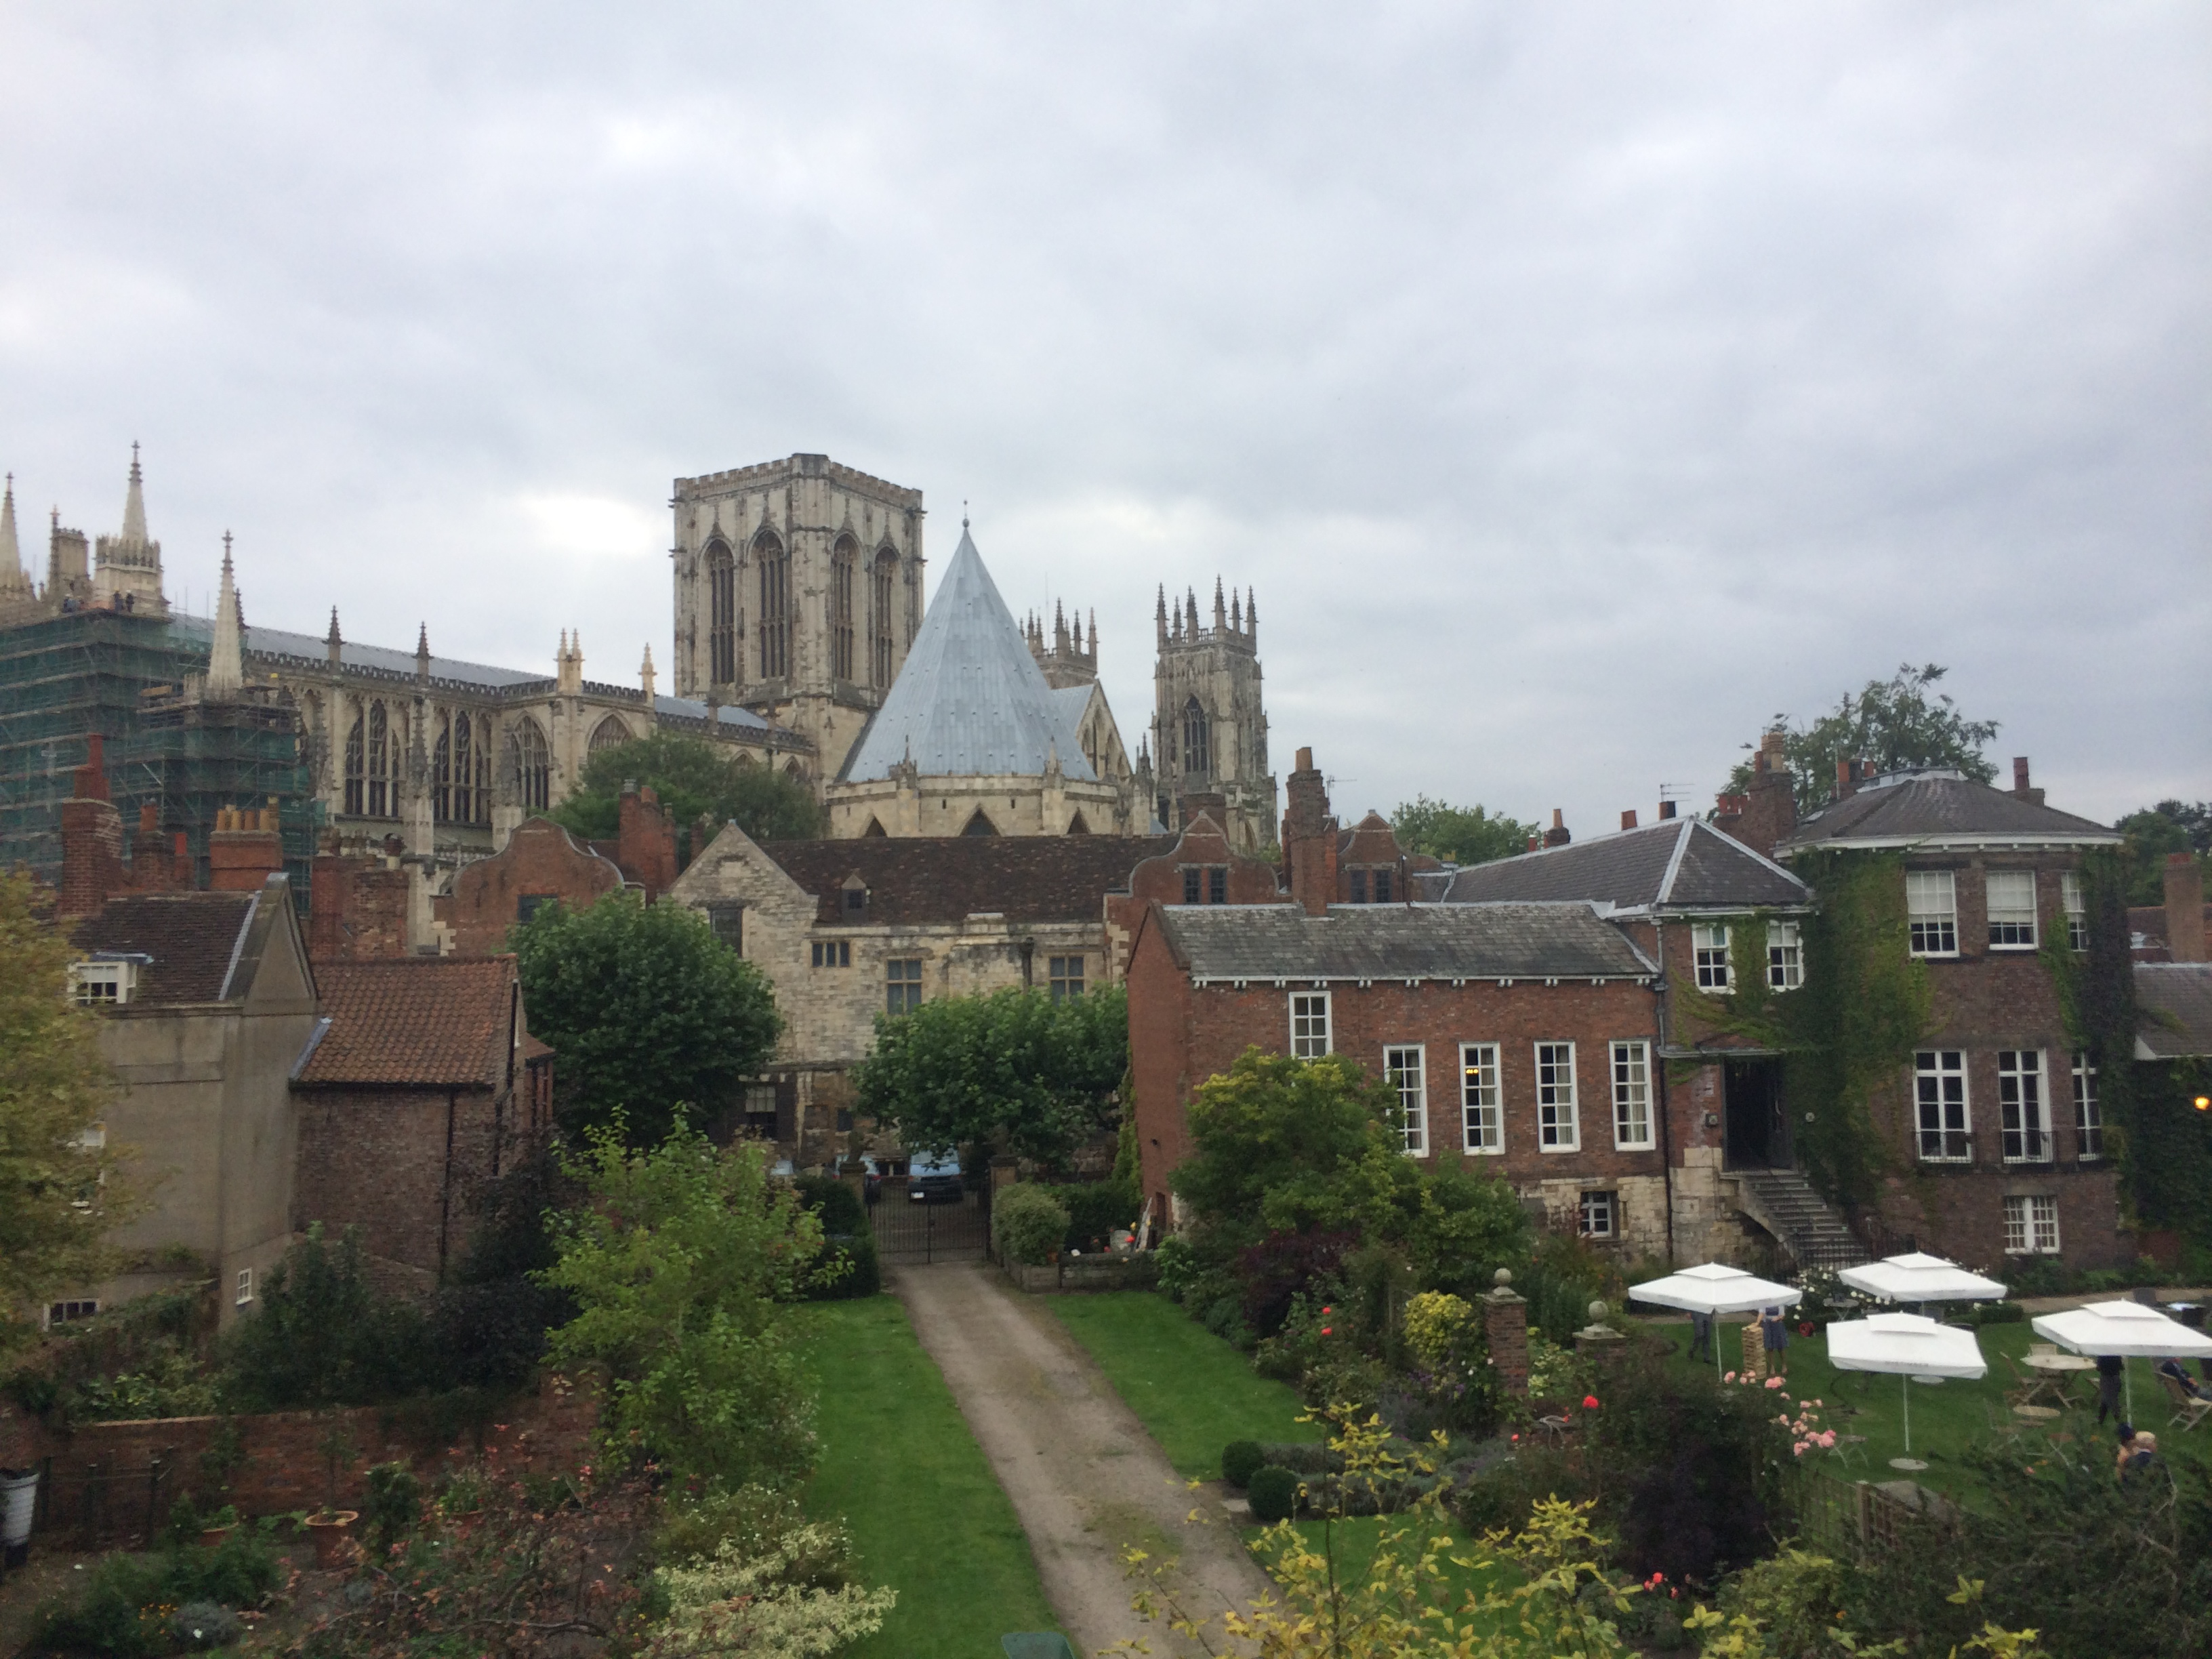 View of York Minster taken from the City Walls with Grays Court on the right, Treasurers House and The Chapter House centre in front of the Central Tower of the Minster